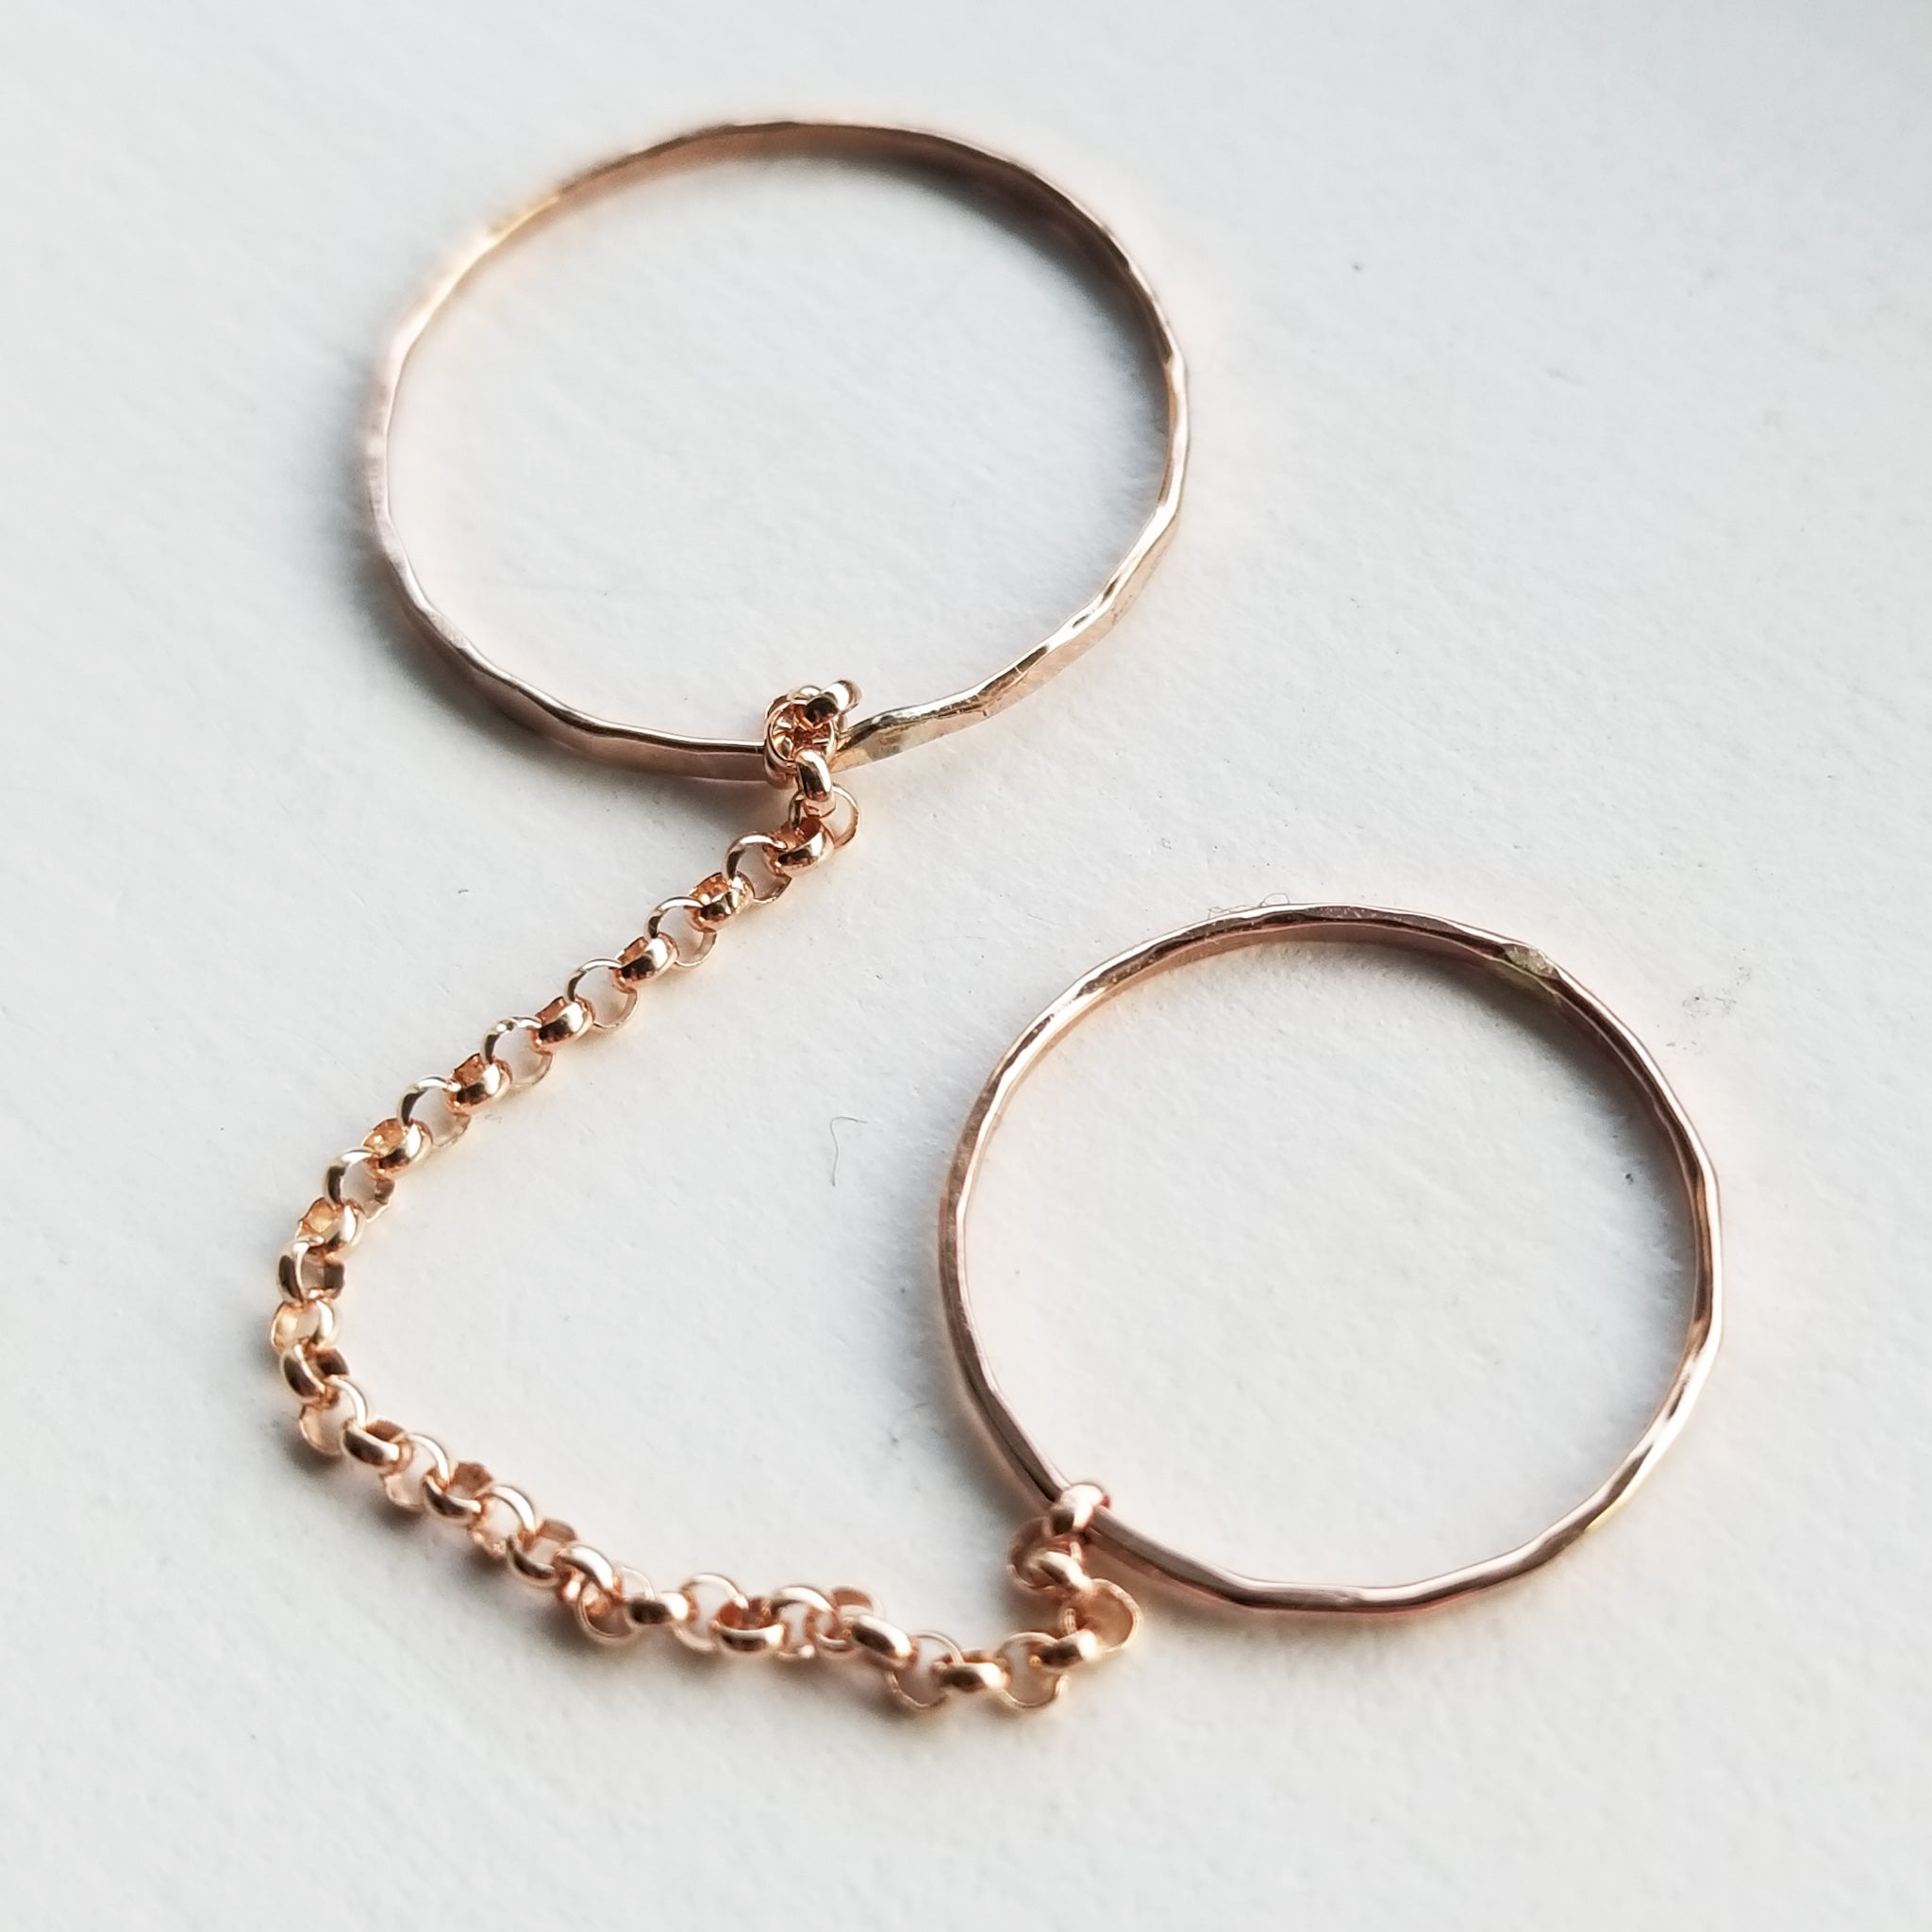 Double chain ring - 14k rose gold filled